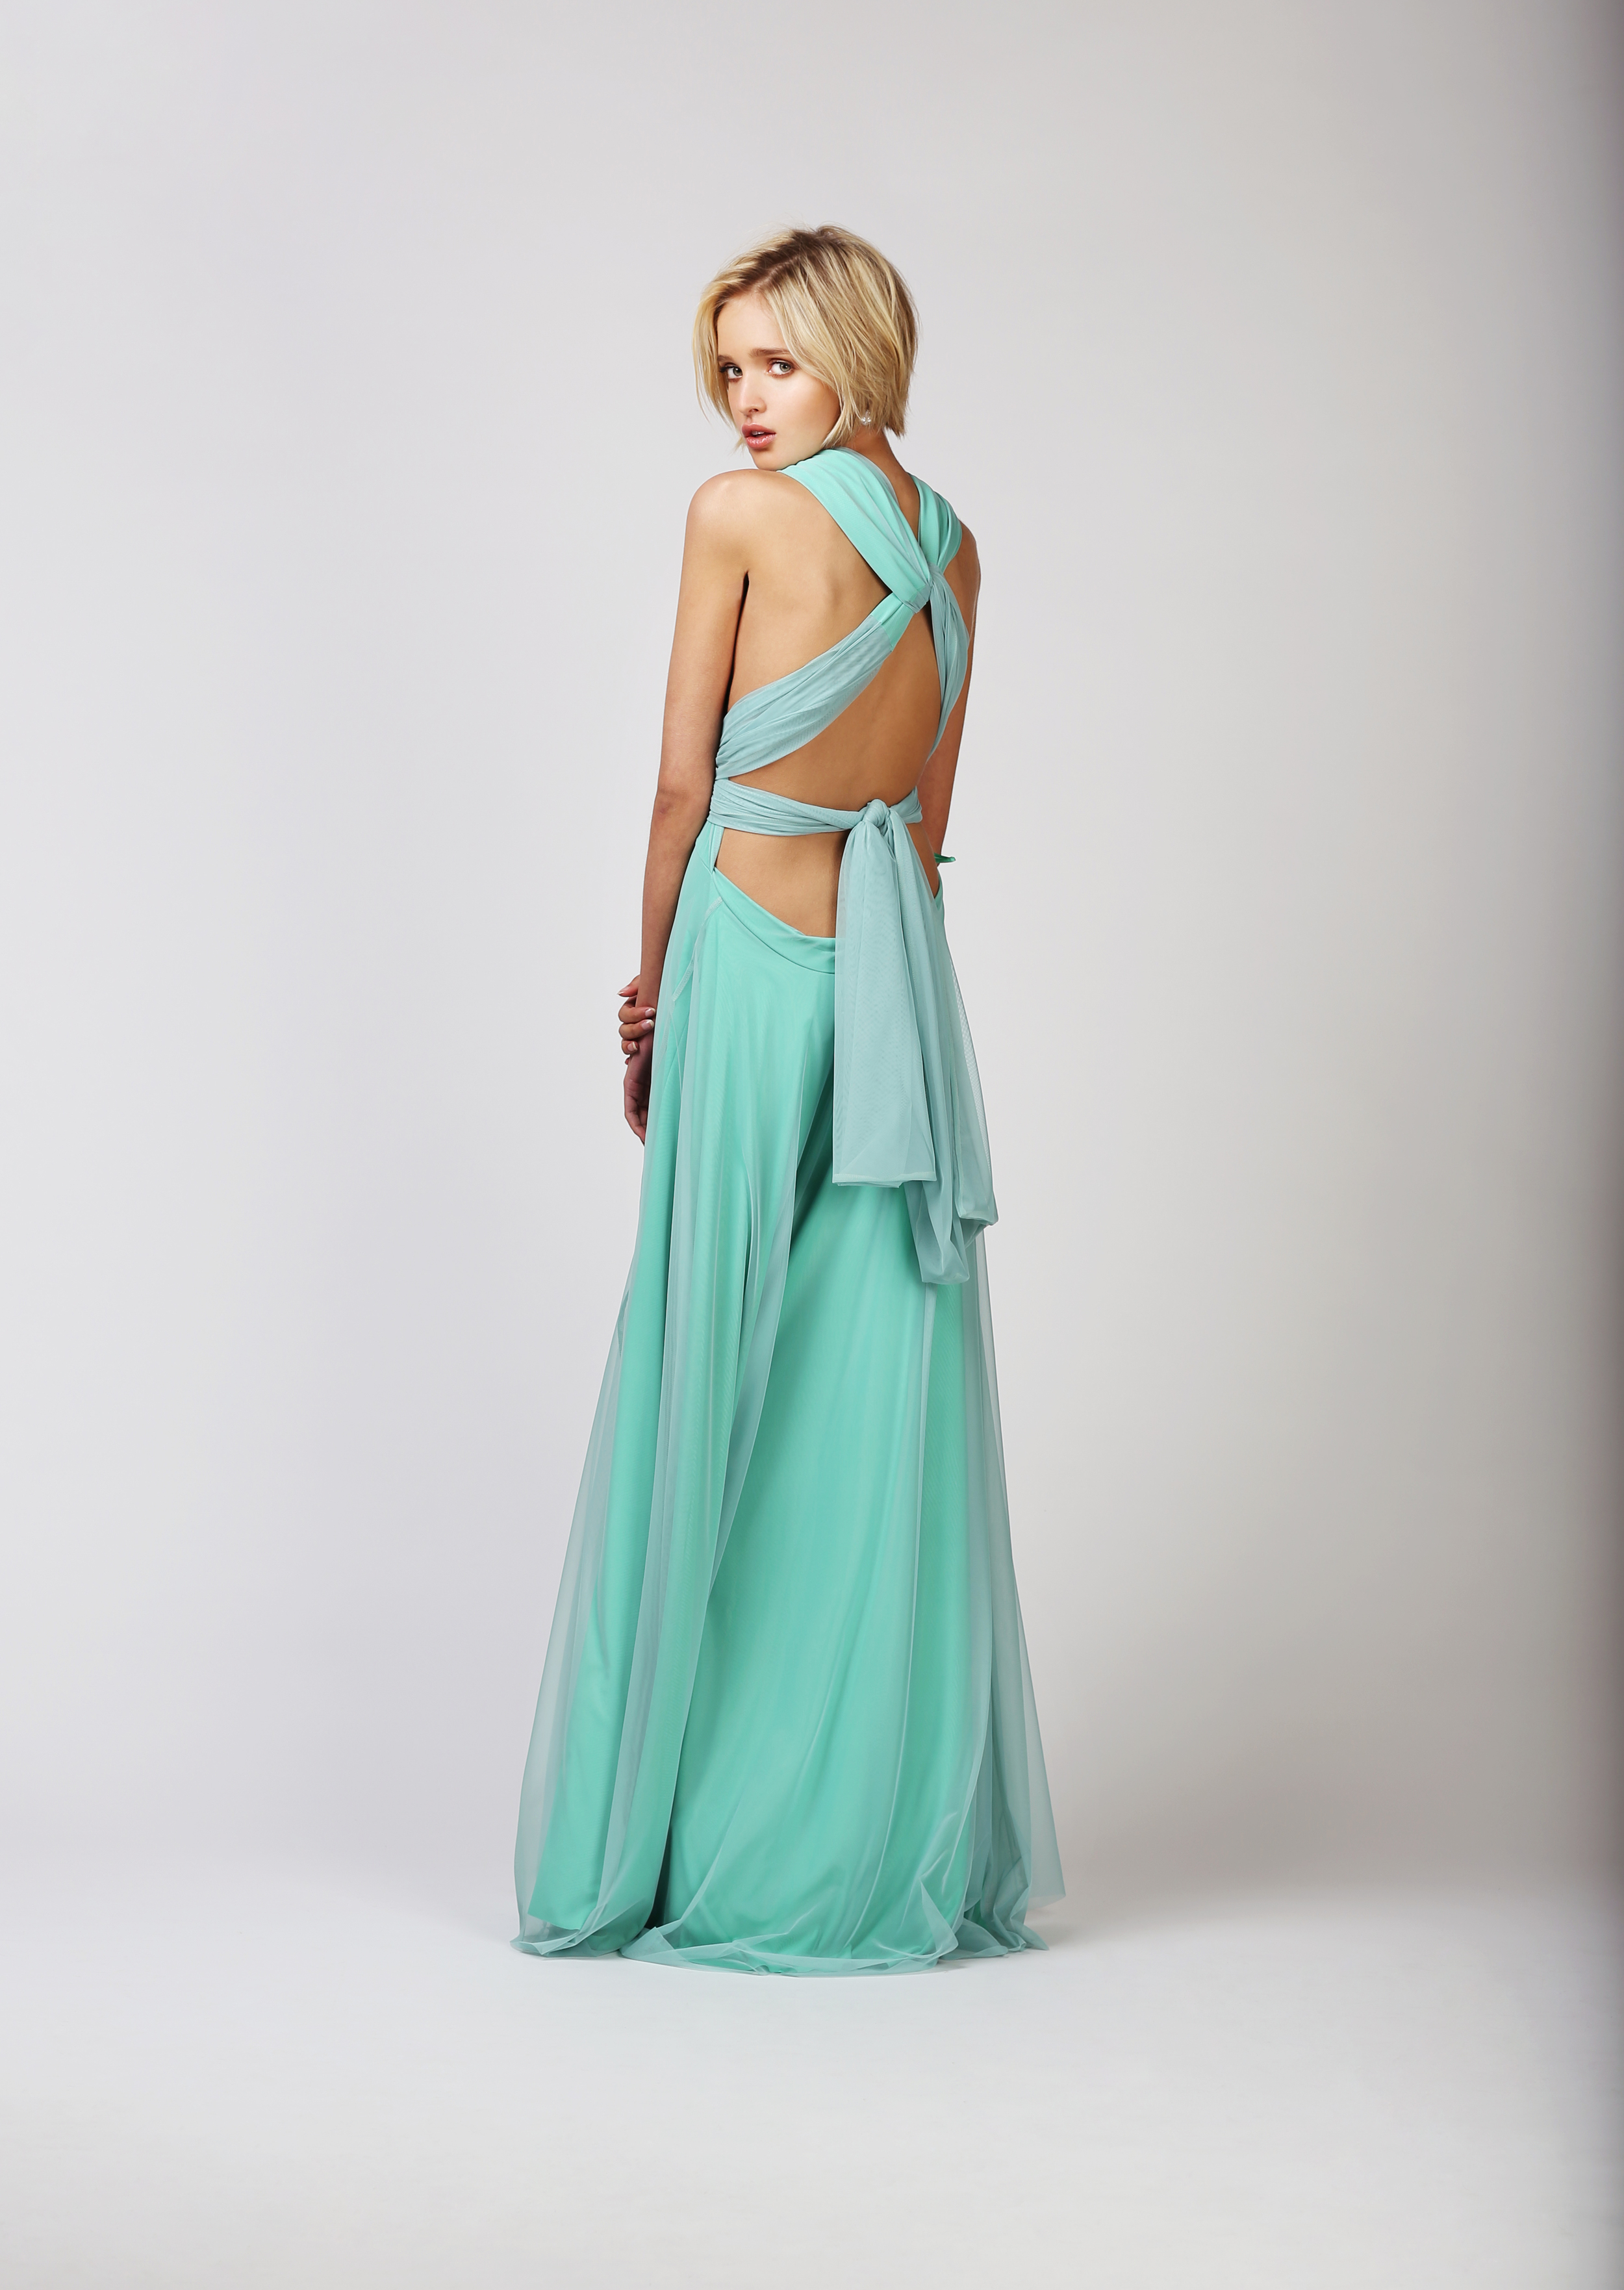 TWO BIRDS TULLE BALL GOWN - SEAFOOD